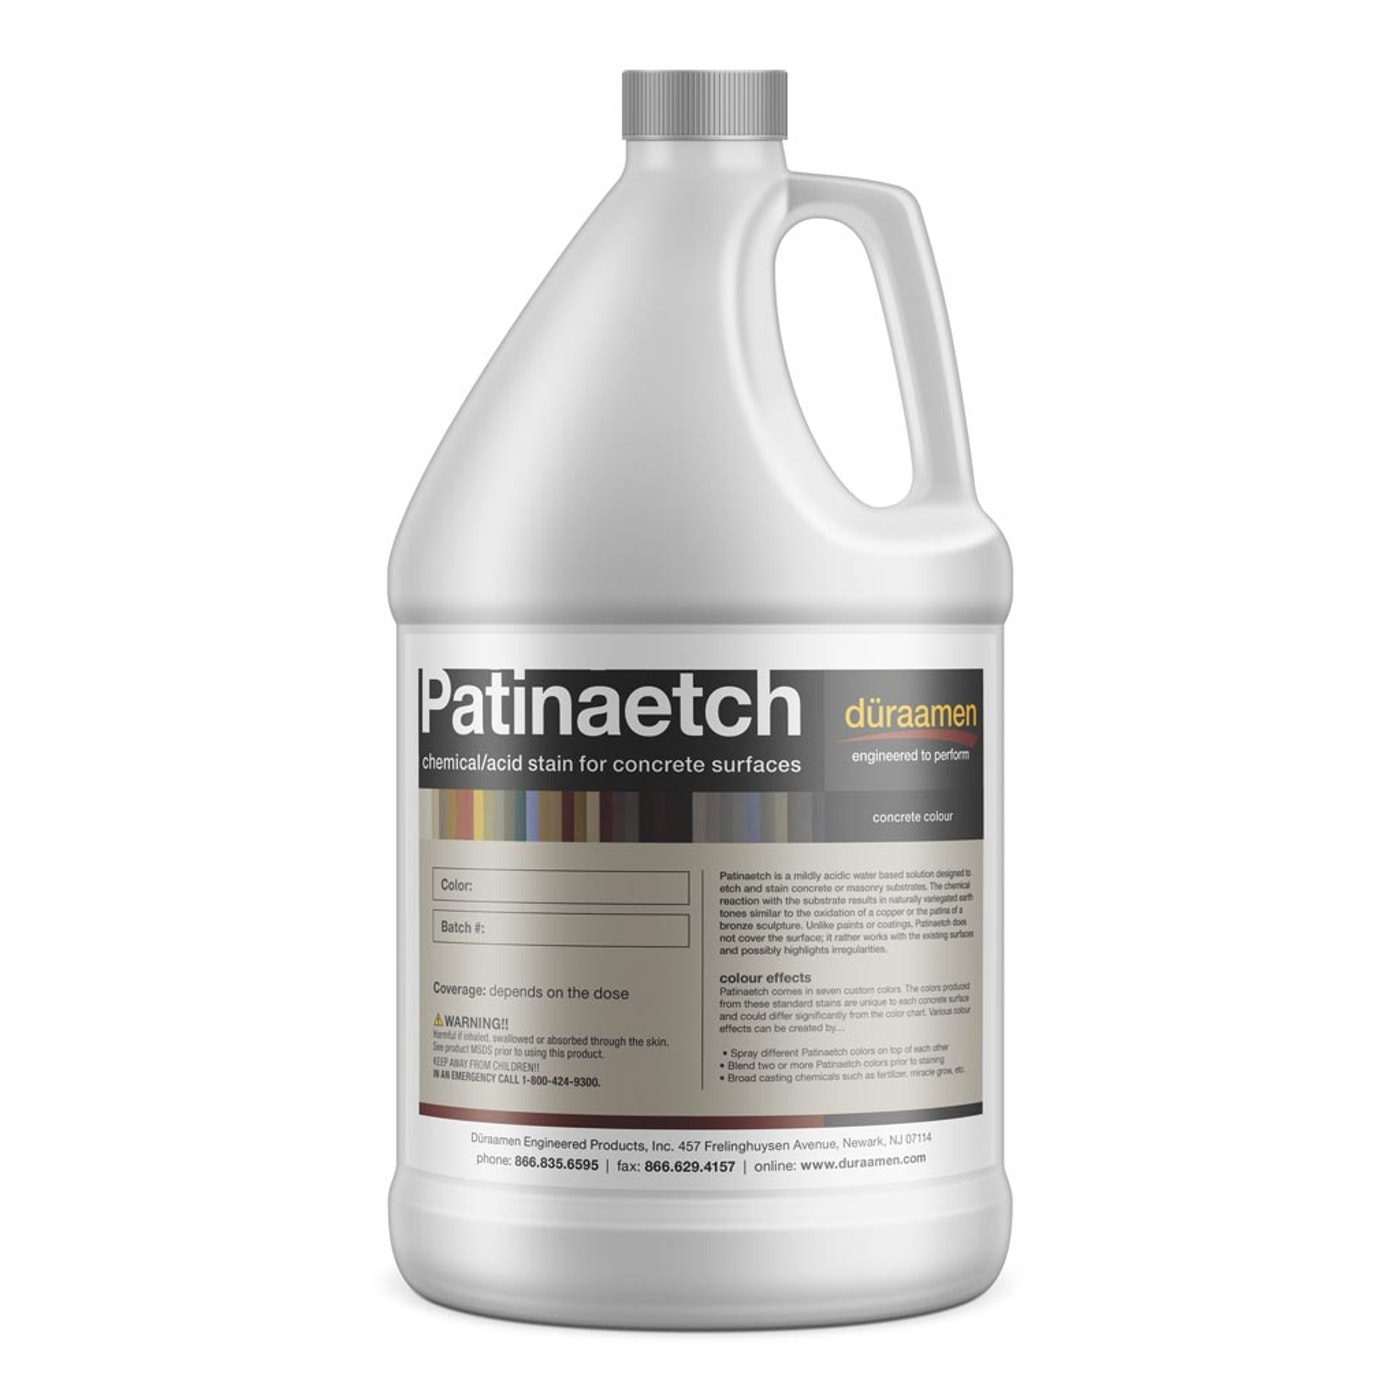 Chemical Stain For Polished Concrete Floors